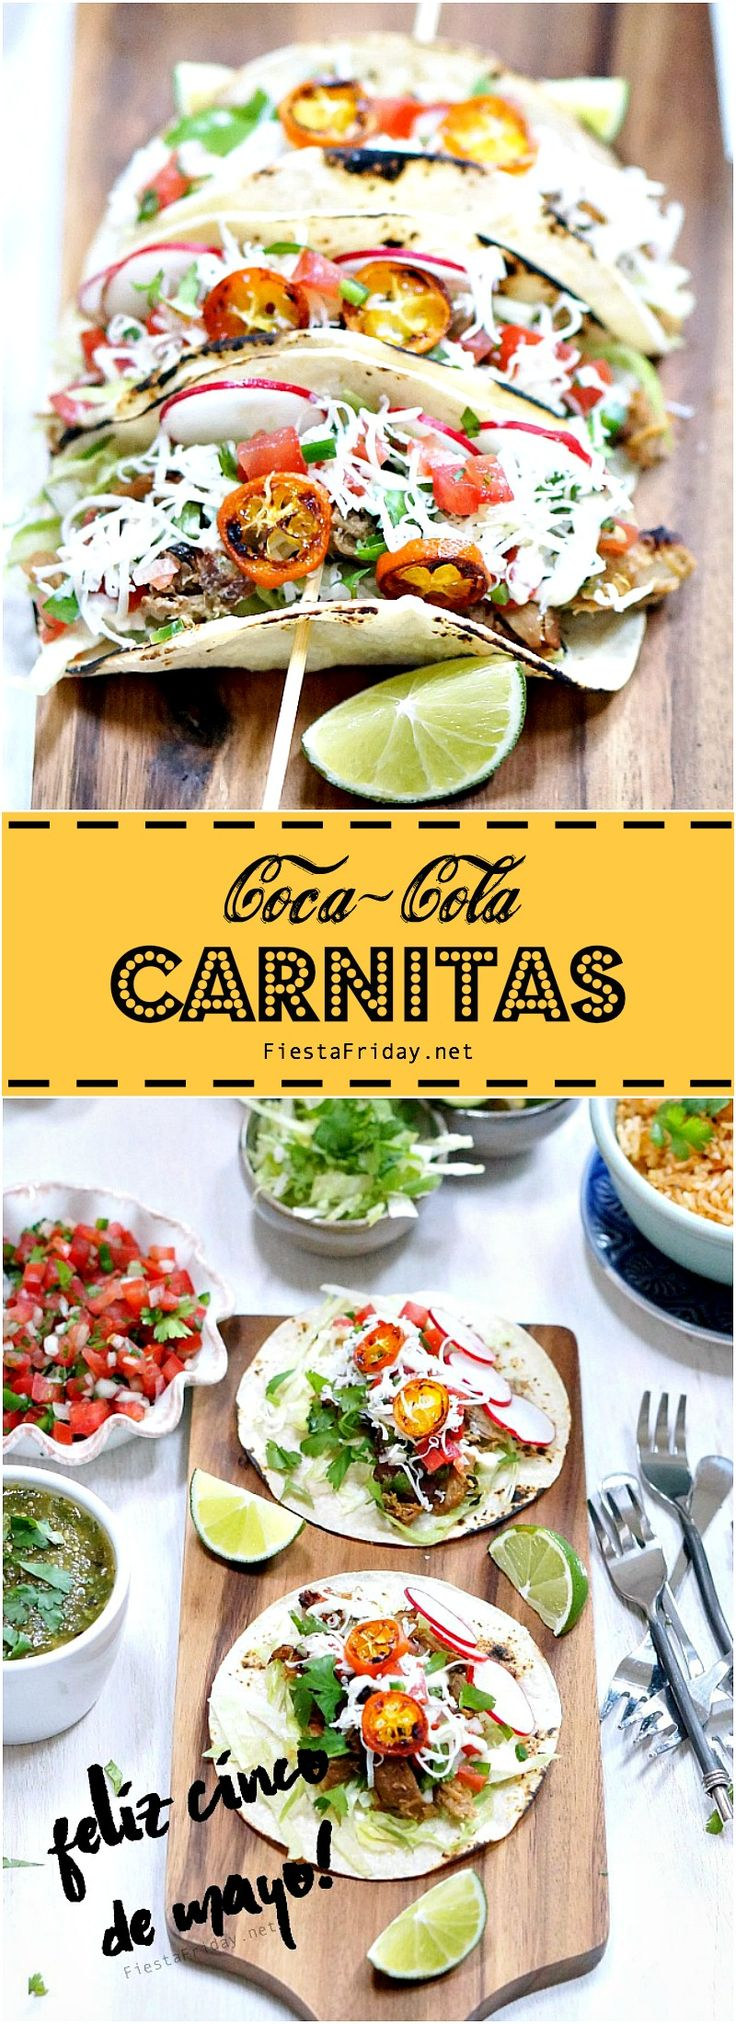 "Carnitas (""little meats""), pork braised in Coca-Cola and orange juice until tender, then shredded and fried in its own fat, are perfectly brown, crisp, and flavorful little morsels of meat. Excellent for filling your tortillas. For Cinco de Mayo or any day!"